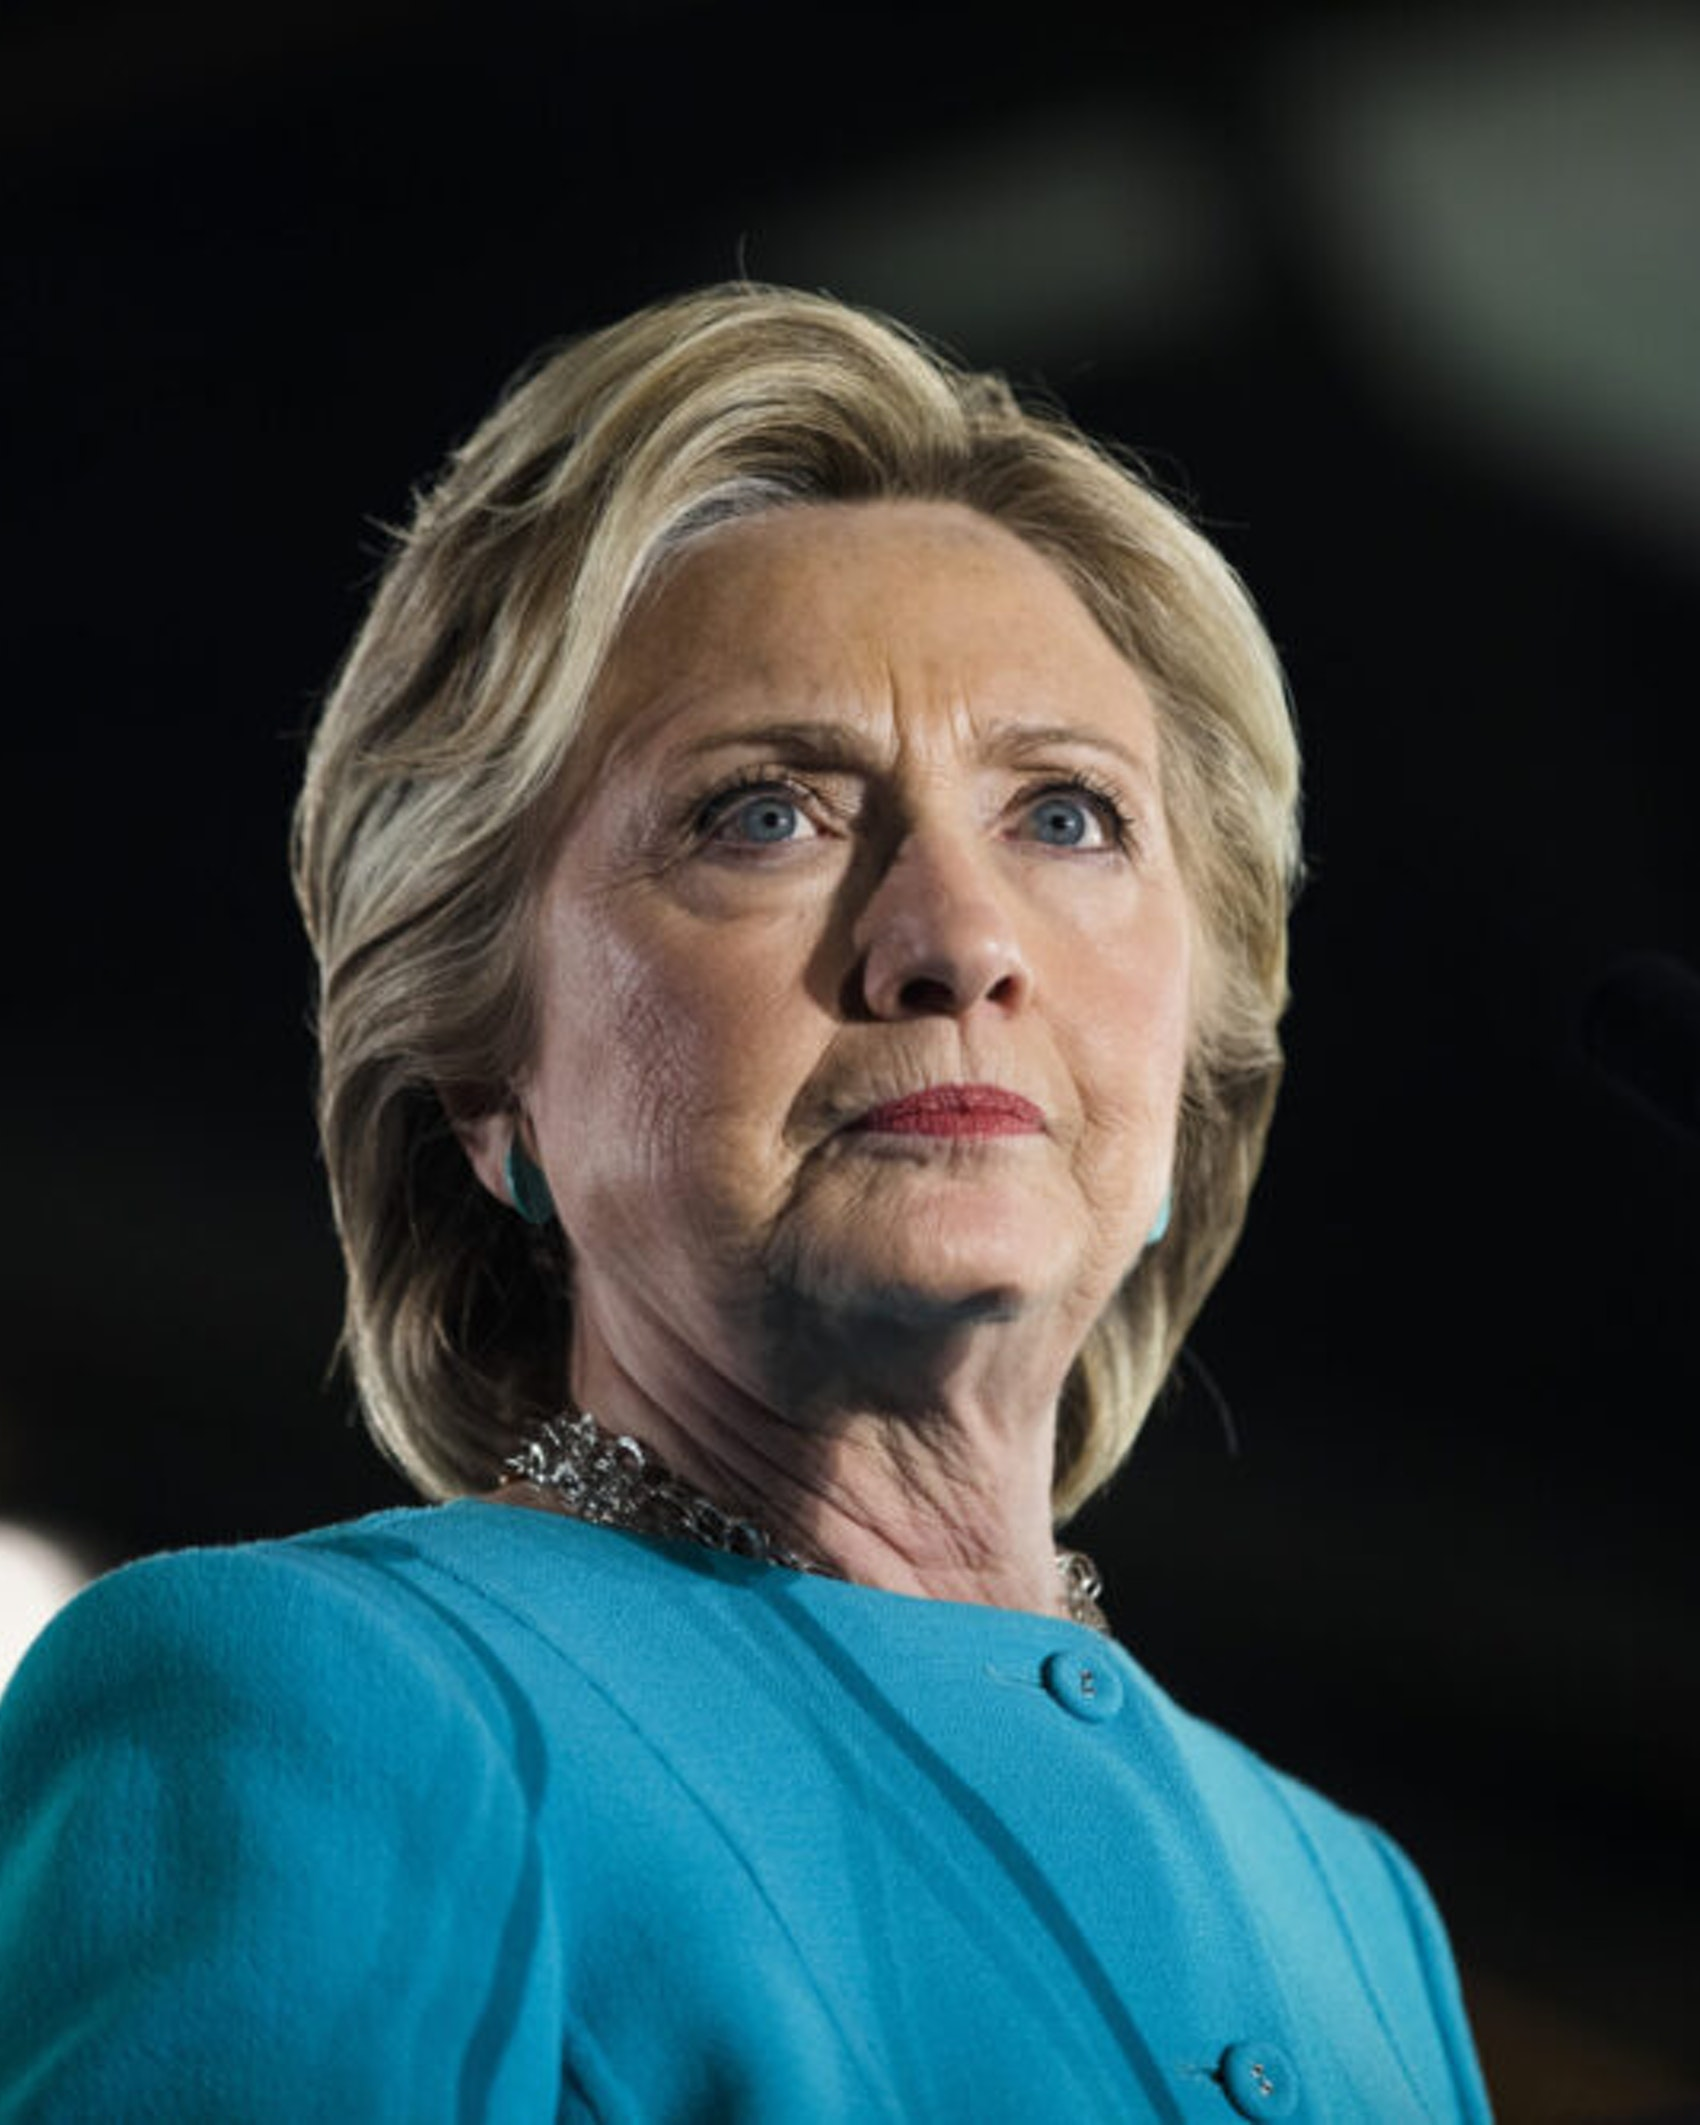 MANCHESTER, NH - NOVEMBER 06: Democratic presidential nominee Hillary Clinton appears at a campaign rally, November 6, 2016 in Manchester, New Hampshire.